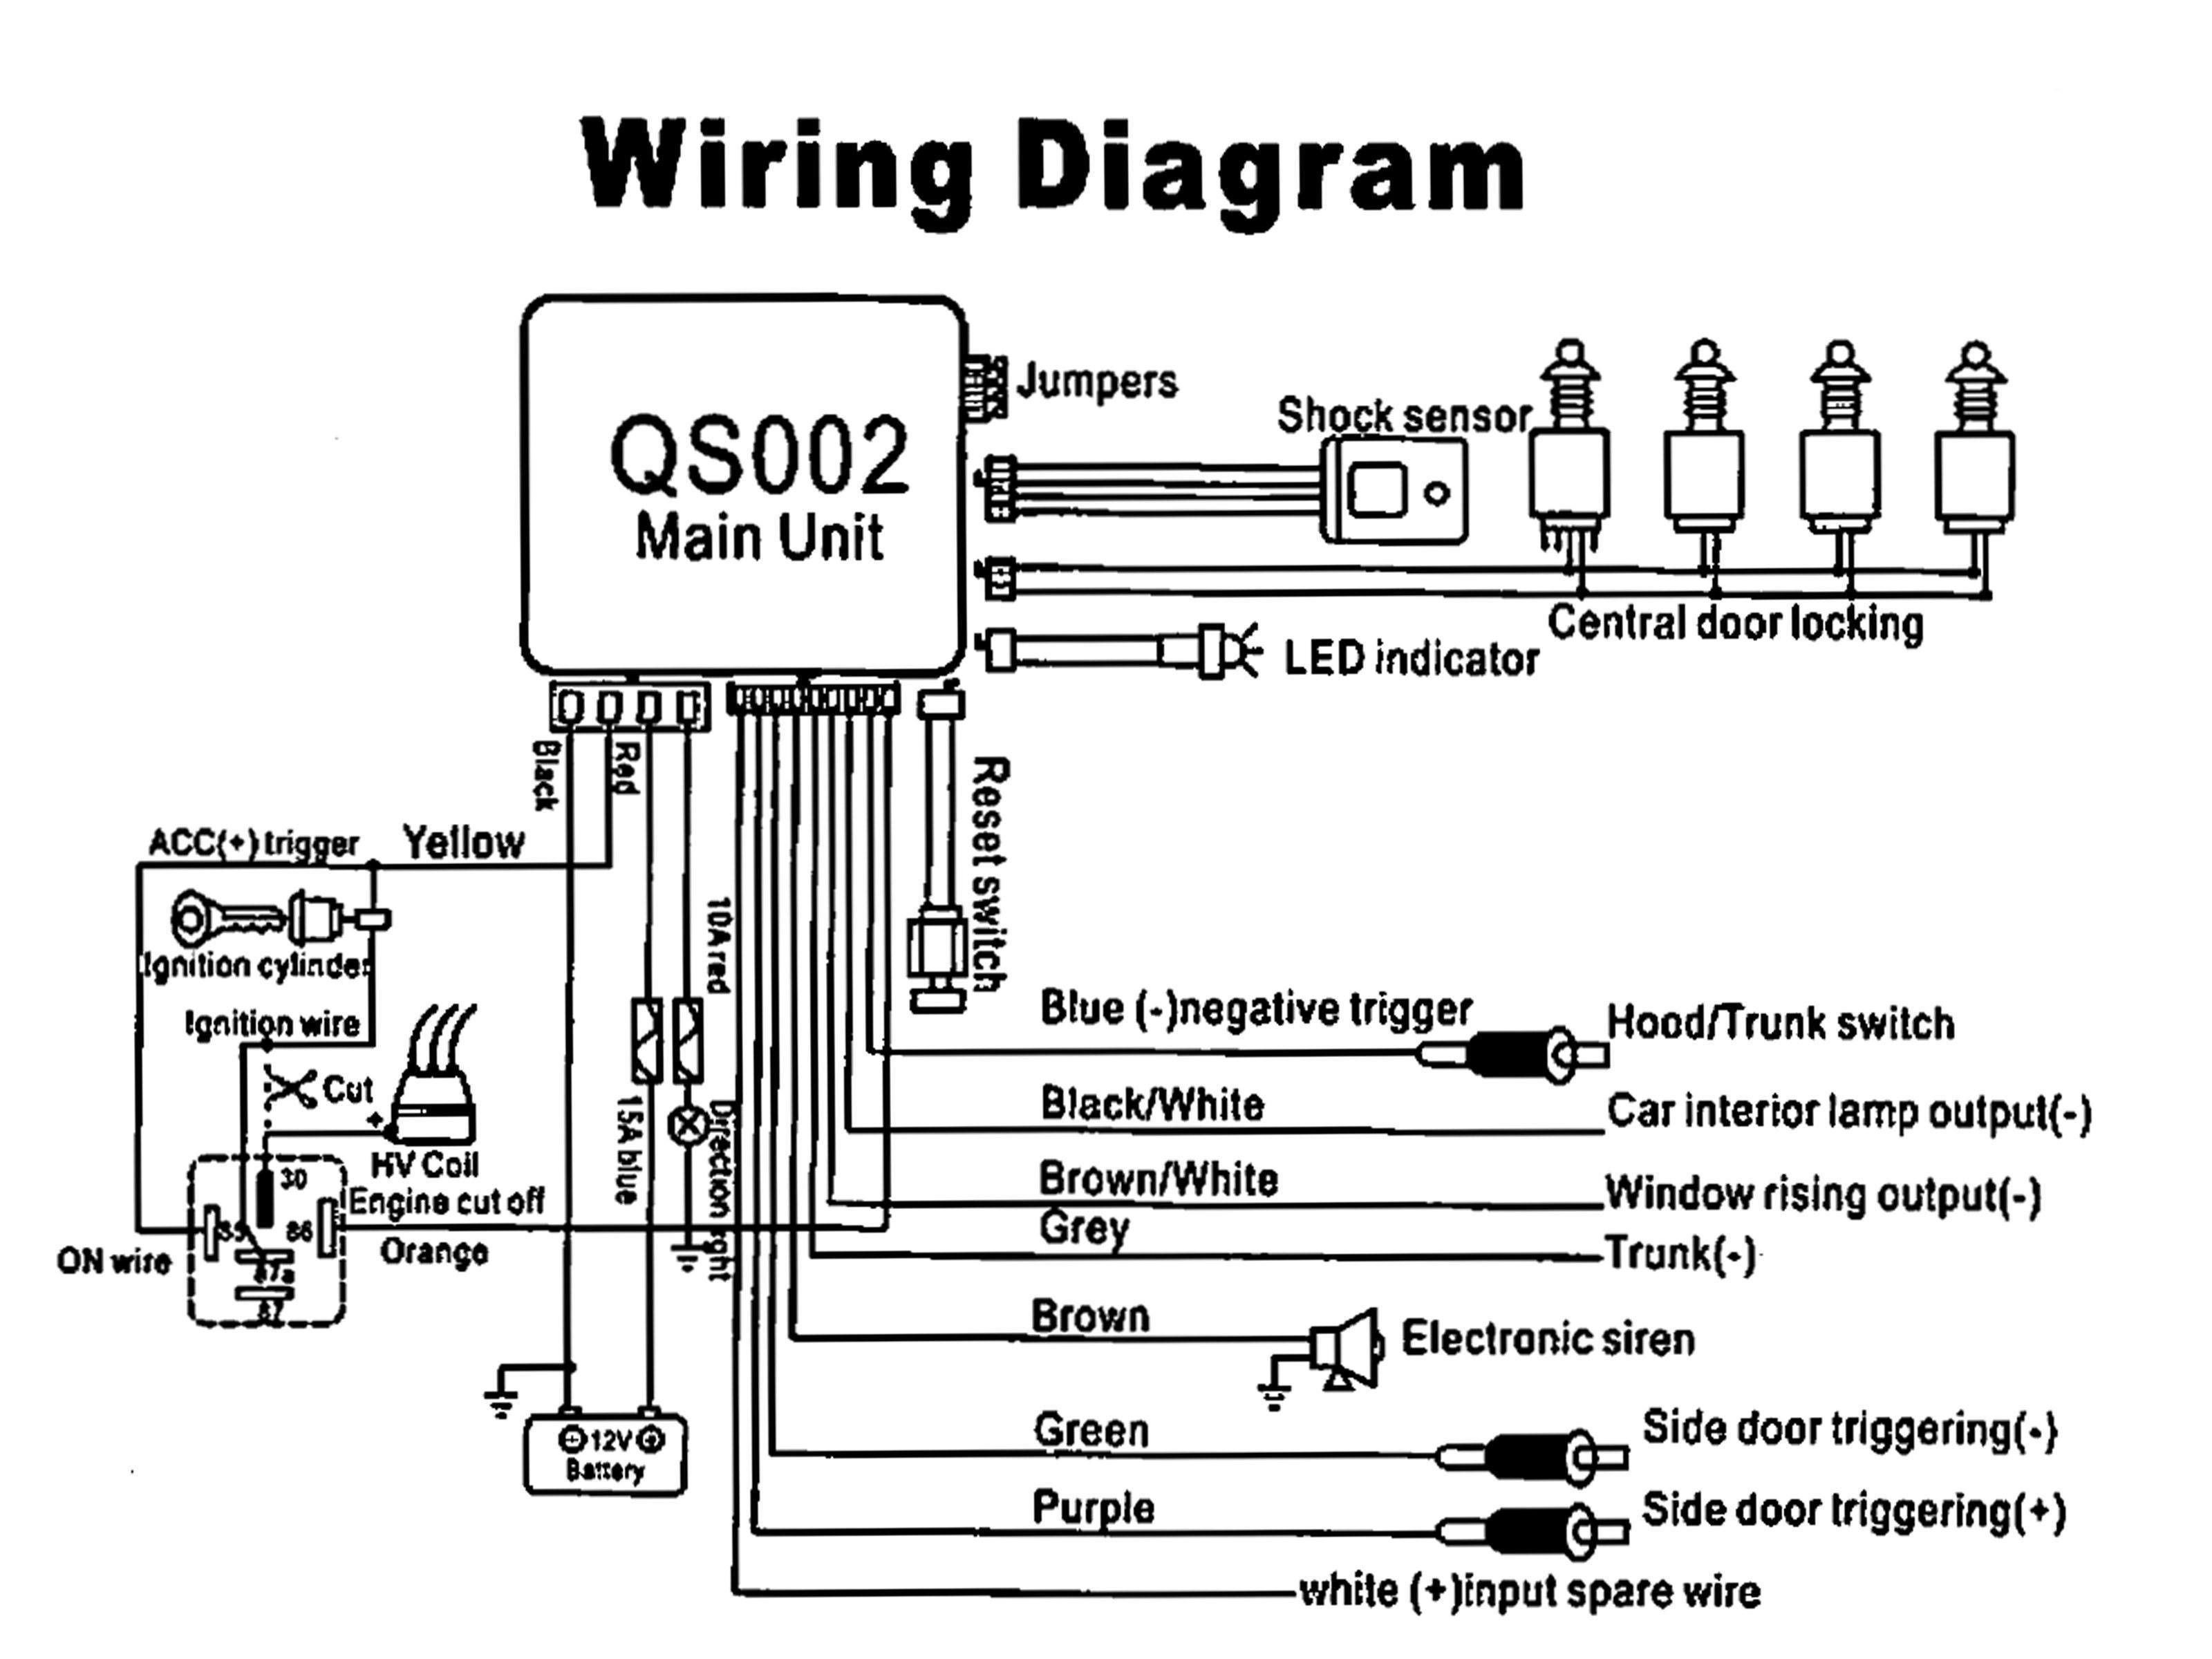 DIAGRAM] Vivint Home Security Wiring Diagram FULL Version HD Quality Wiring  Diagram - HVACDIAGRAMS.BELEN-RODRIGUEZ.ITbelen-rodriguez.it